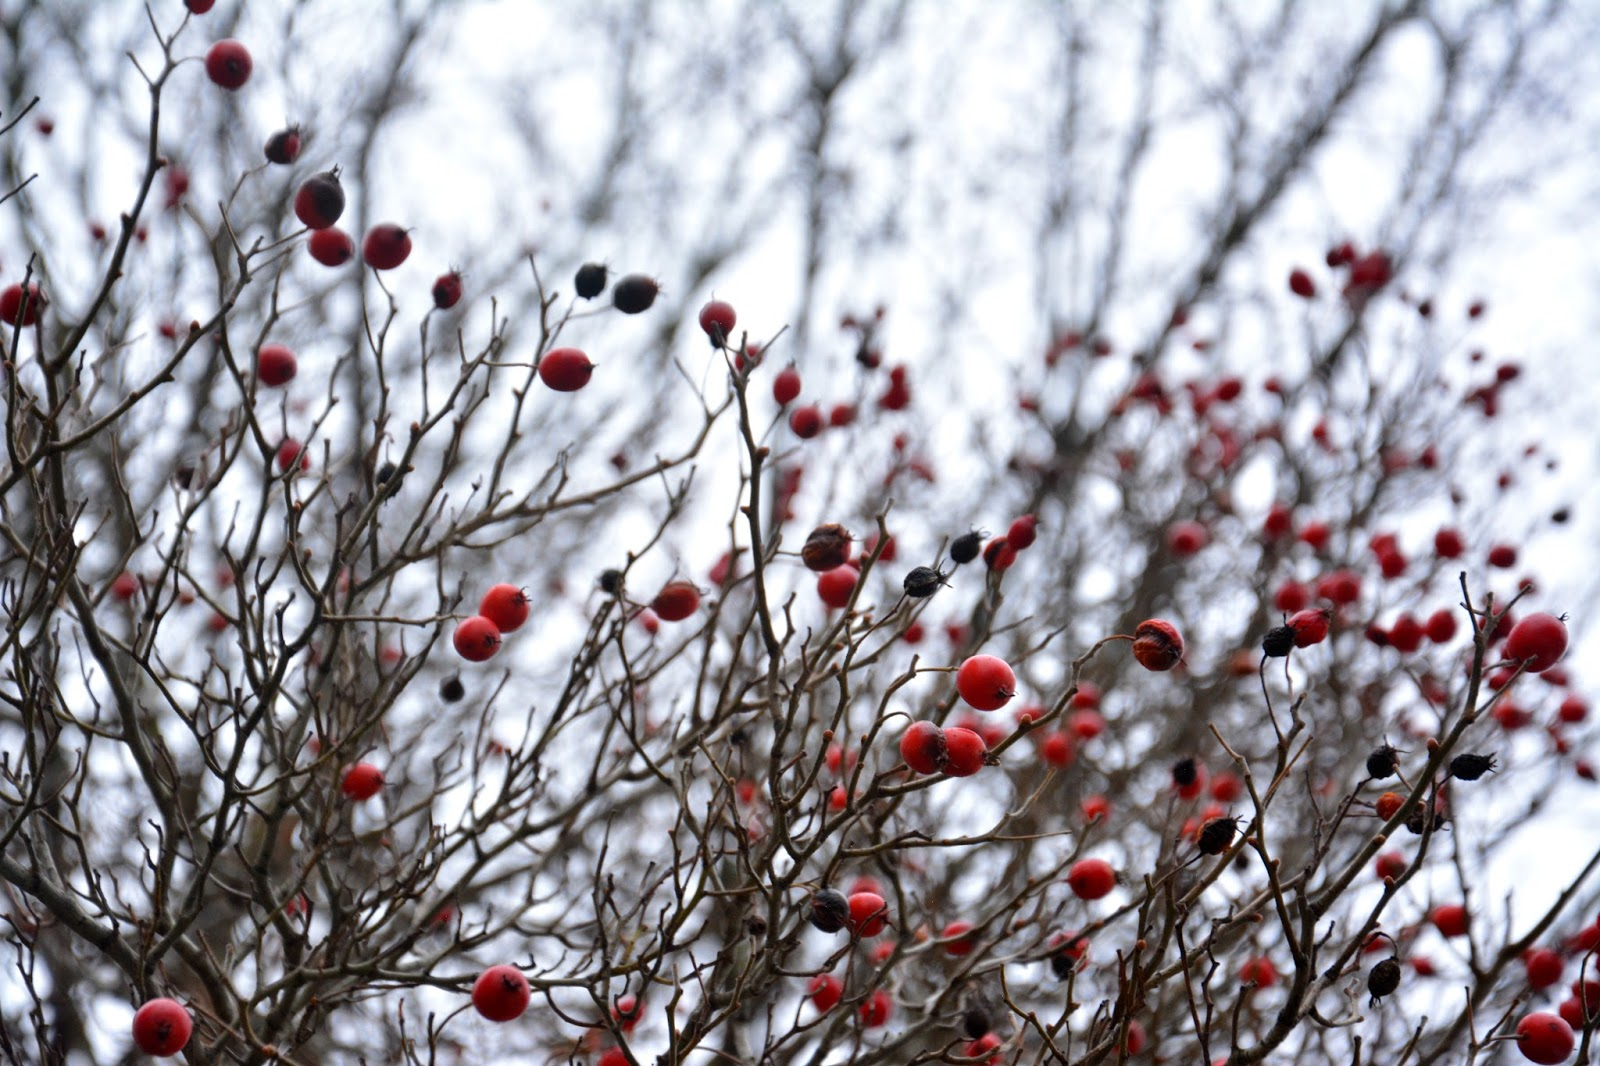 Red berries on dark branches against the sky